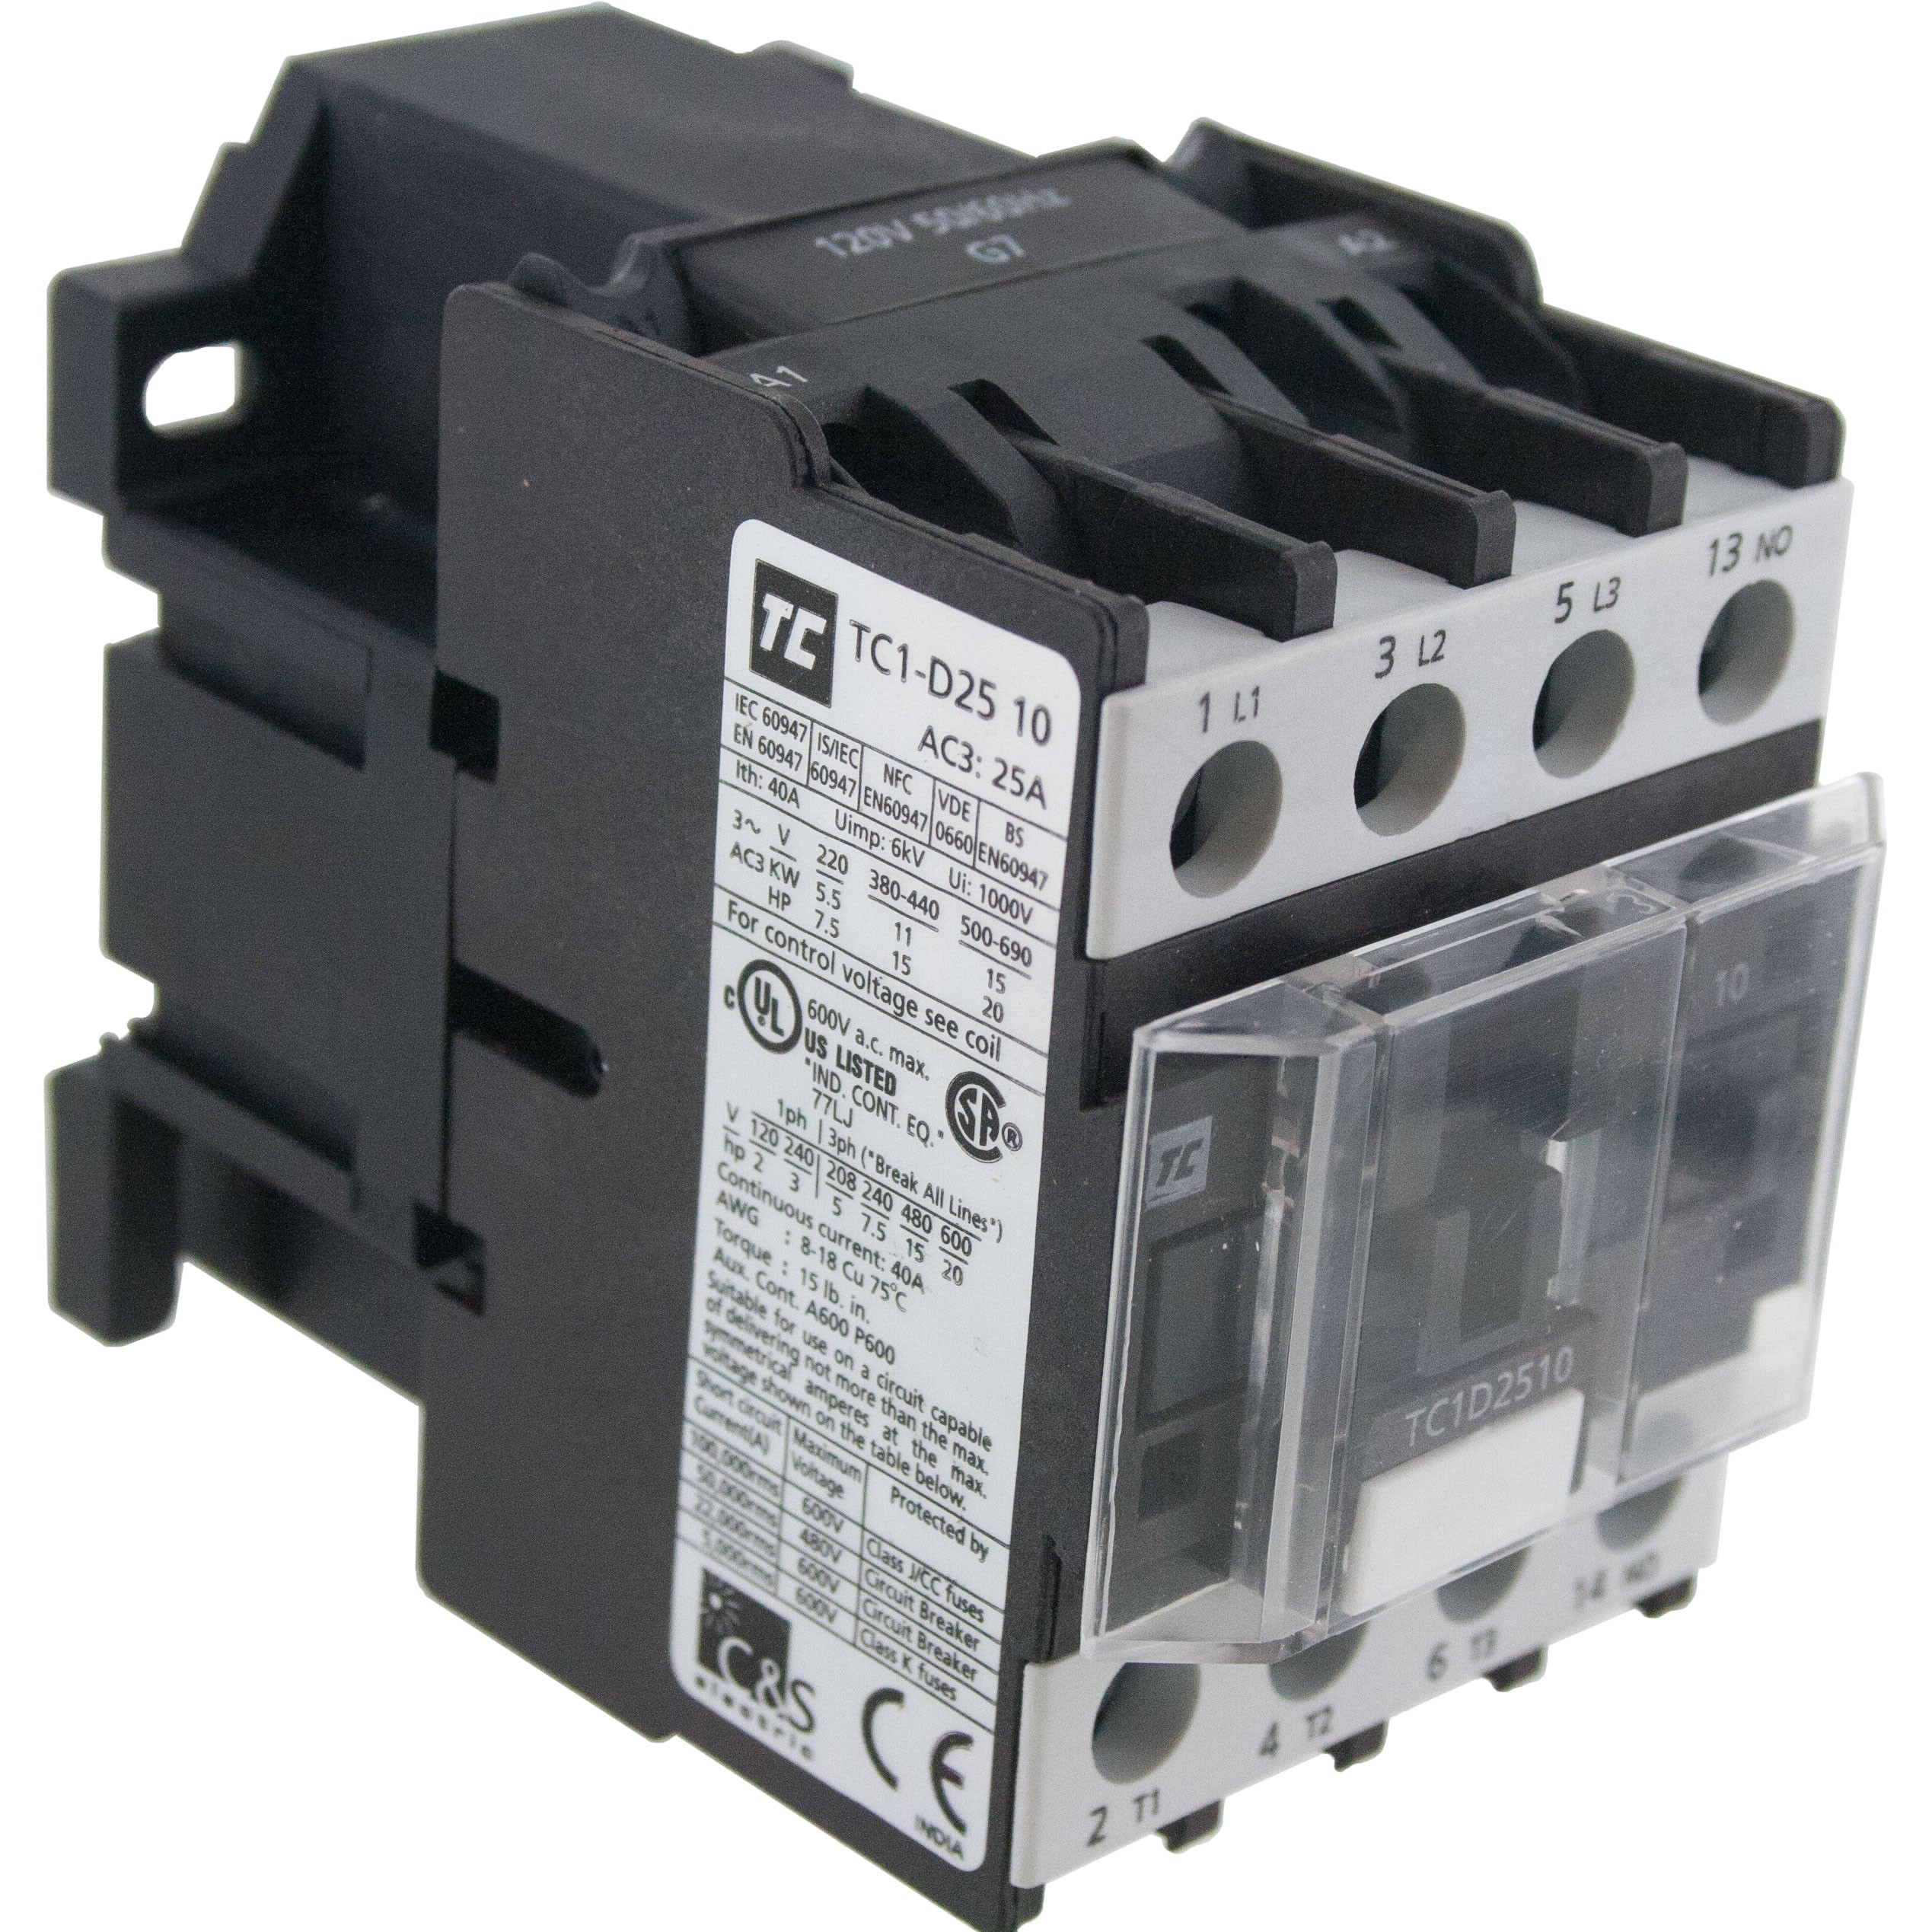 3 Pole Contactor 25 Amp 440 Volt AC Coil Angle